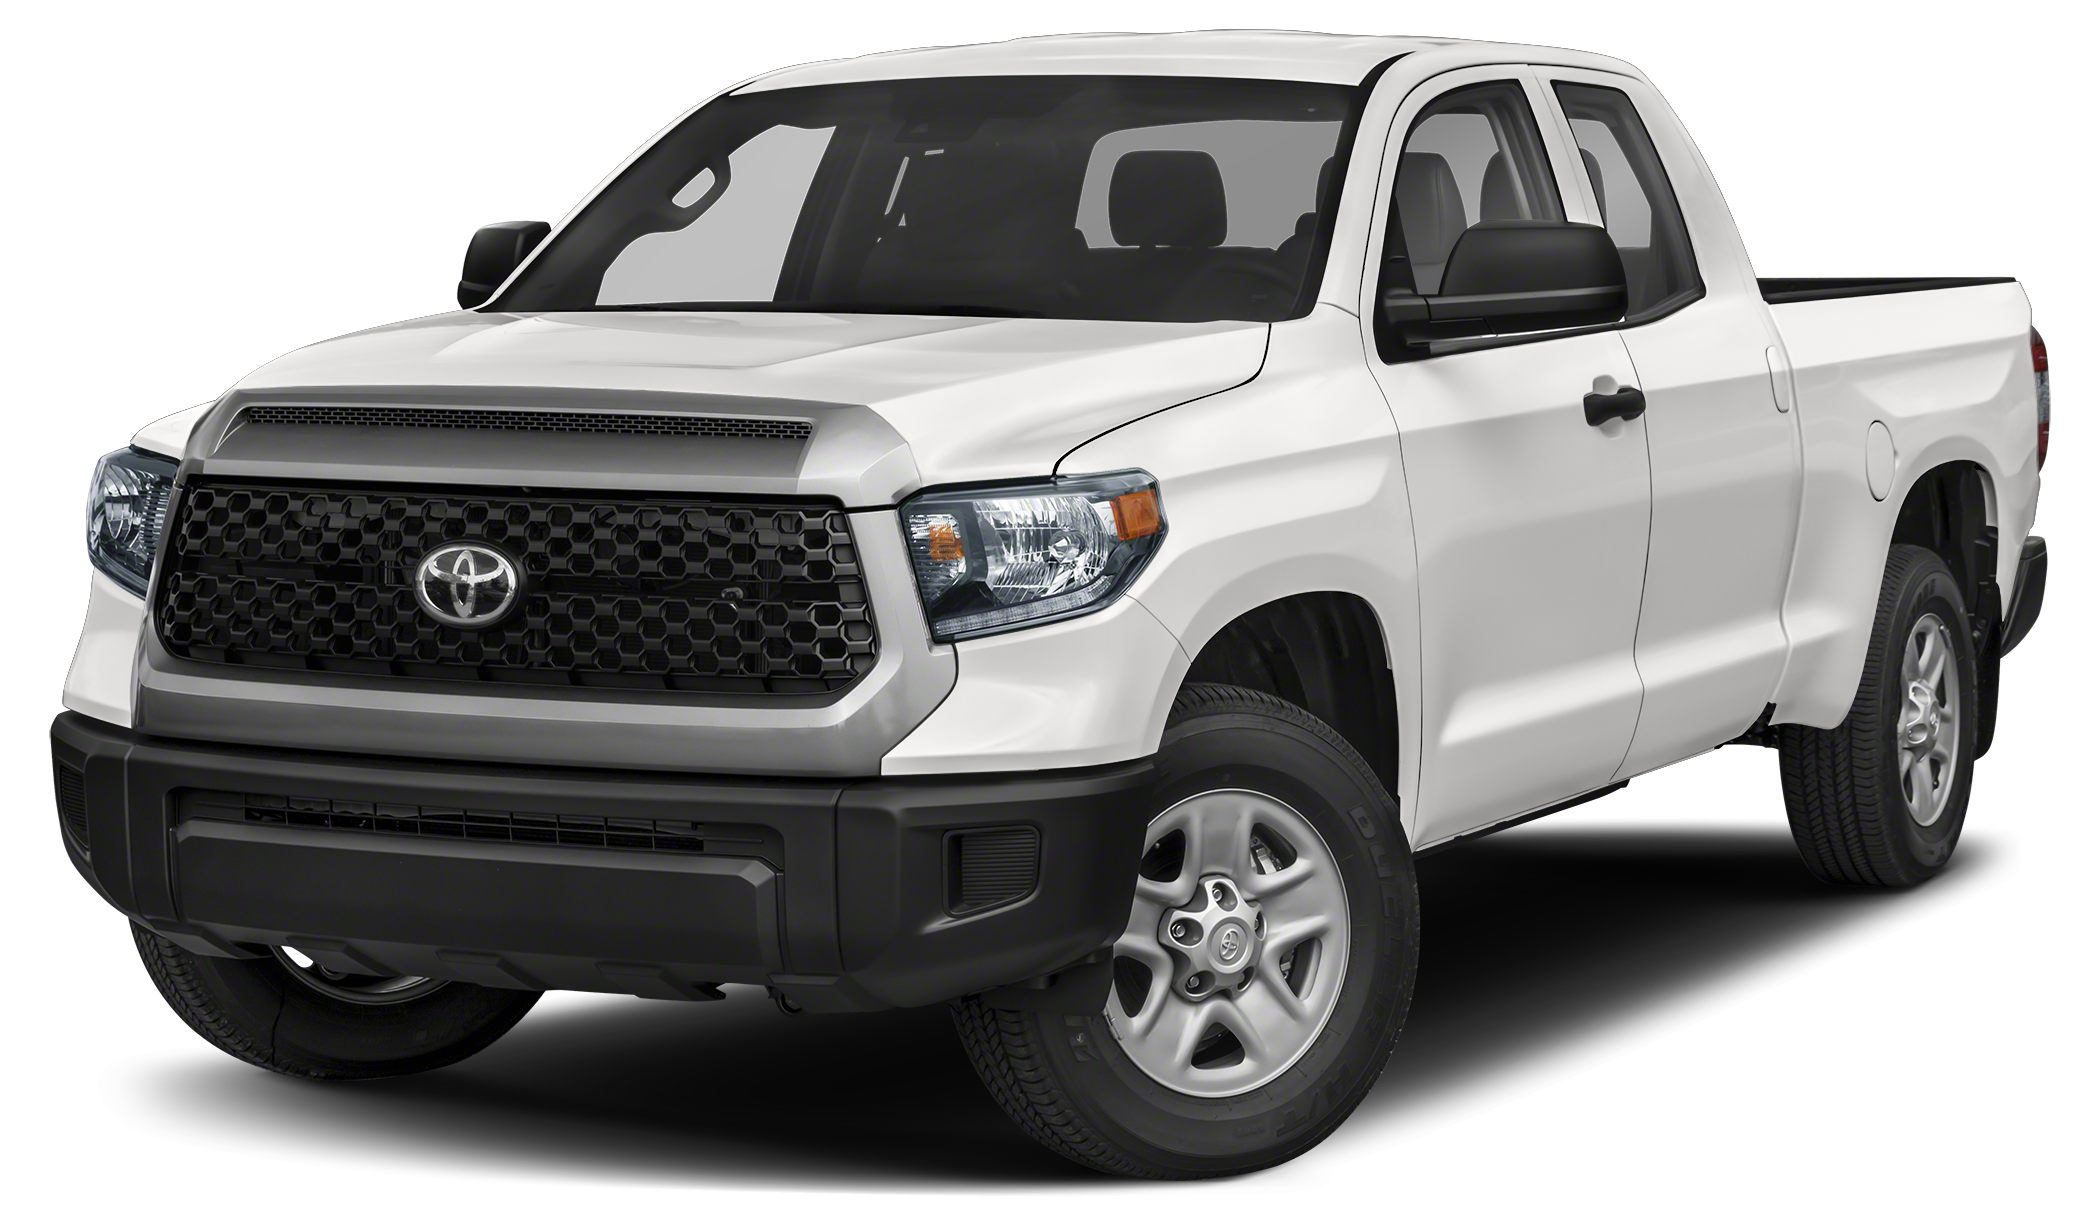 2018 Toyota Tundra SR5 INFERNO exterior and BLACK interior SR5 trim iPodMP3 Input Bluetooth C